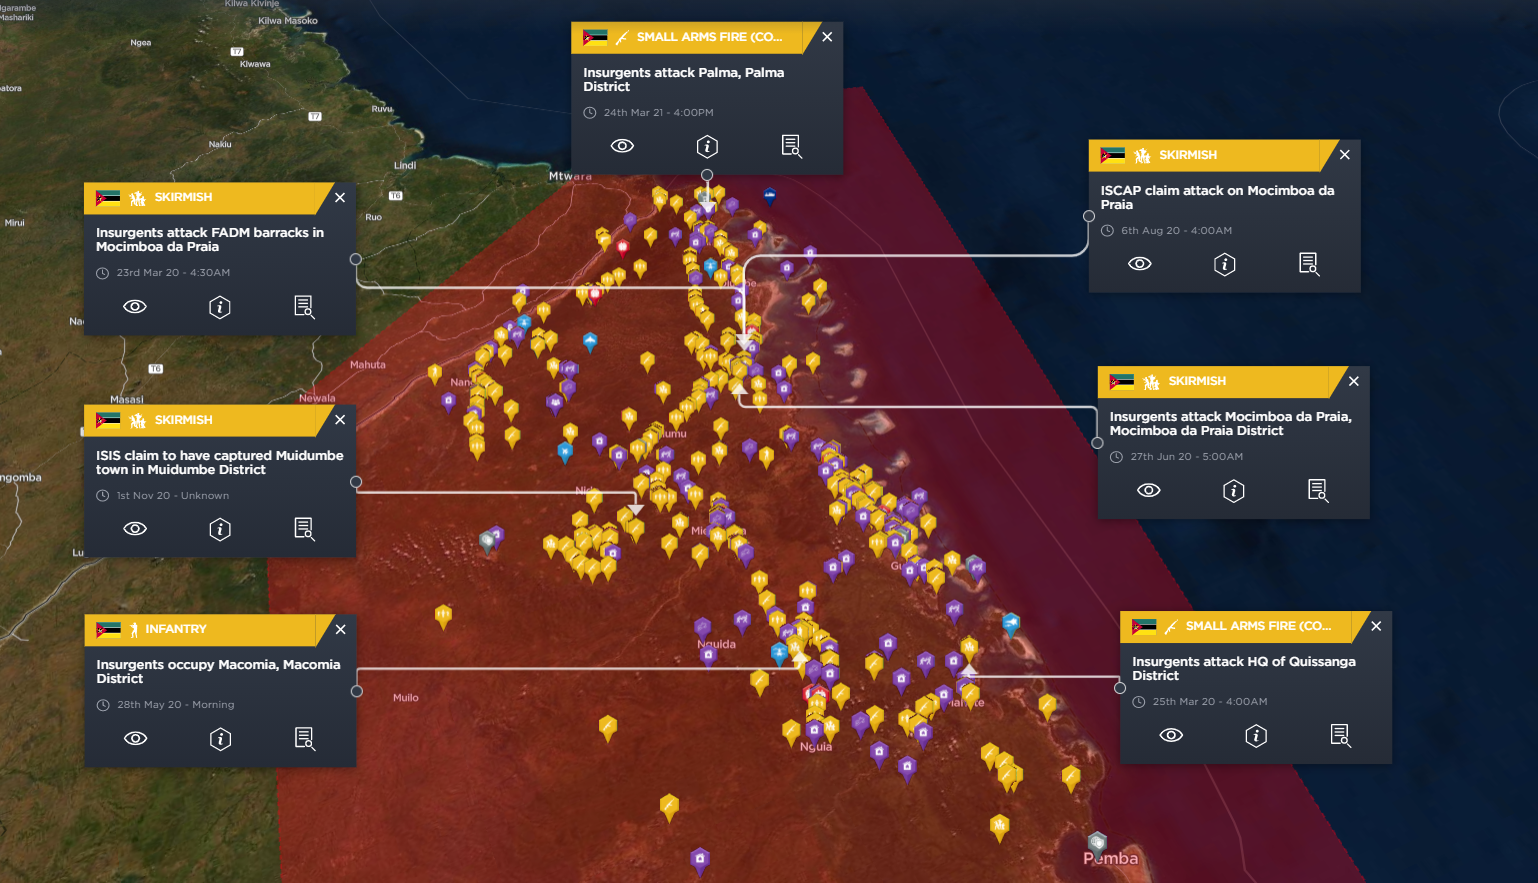 Significant ISIS attacks in Mozambique